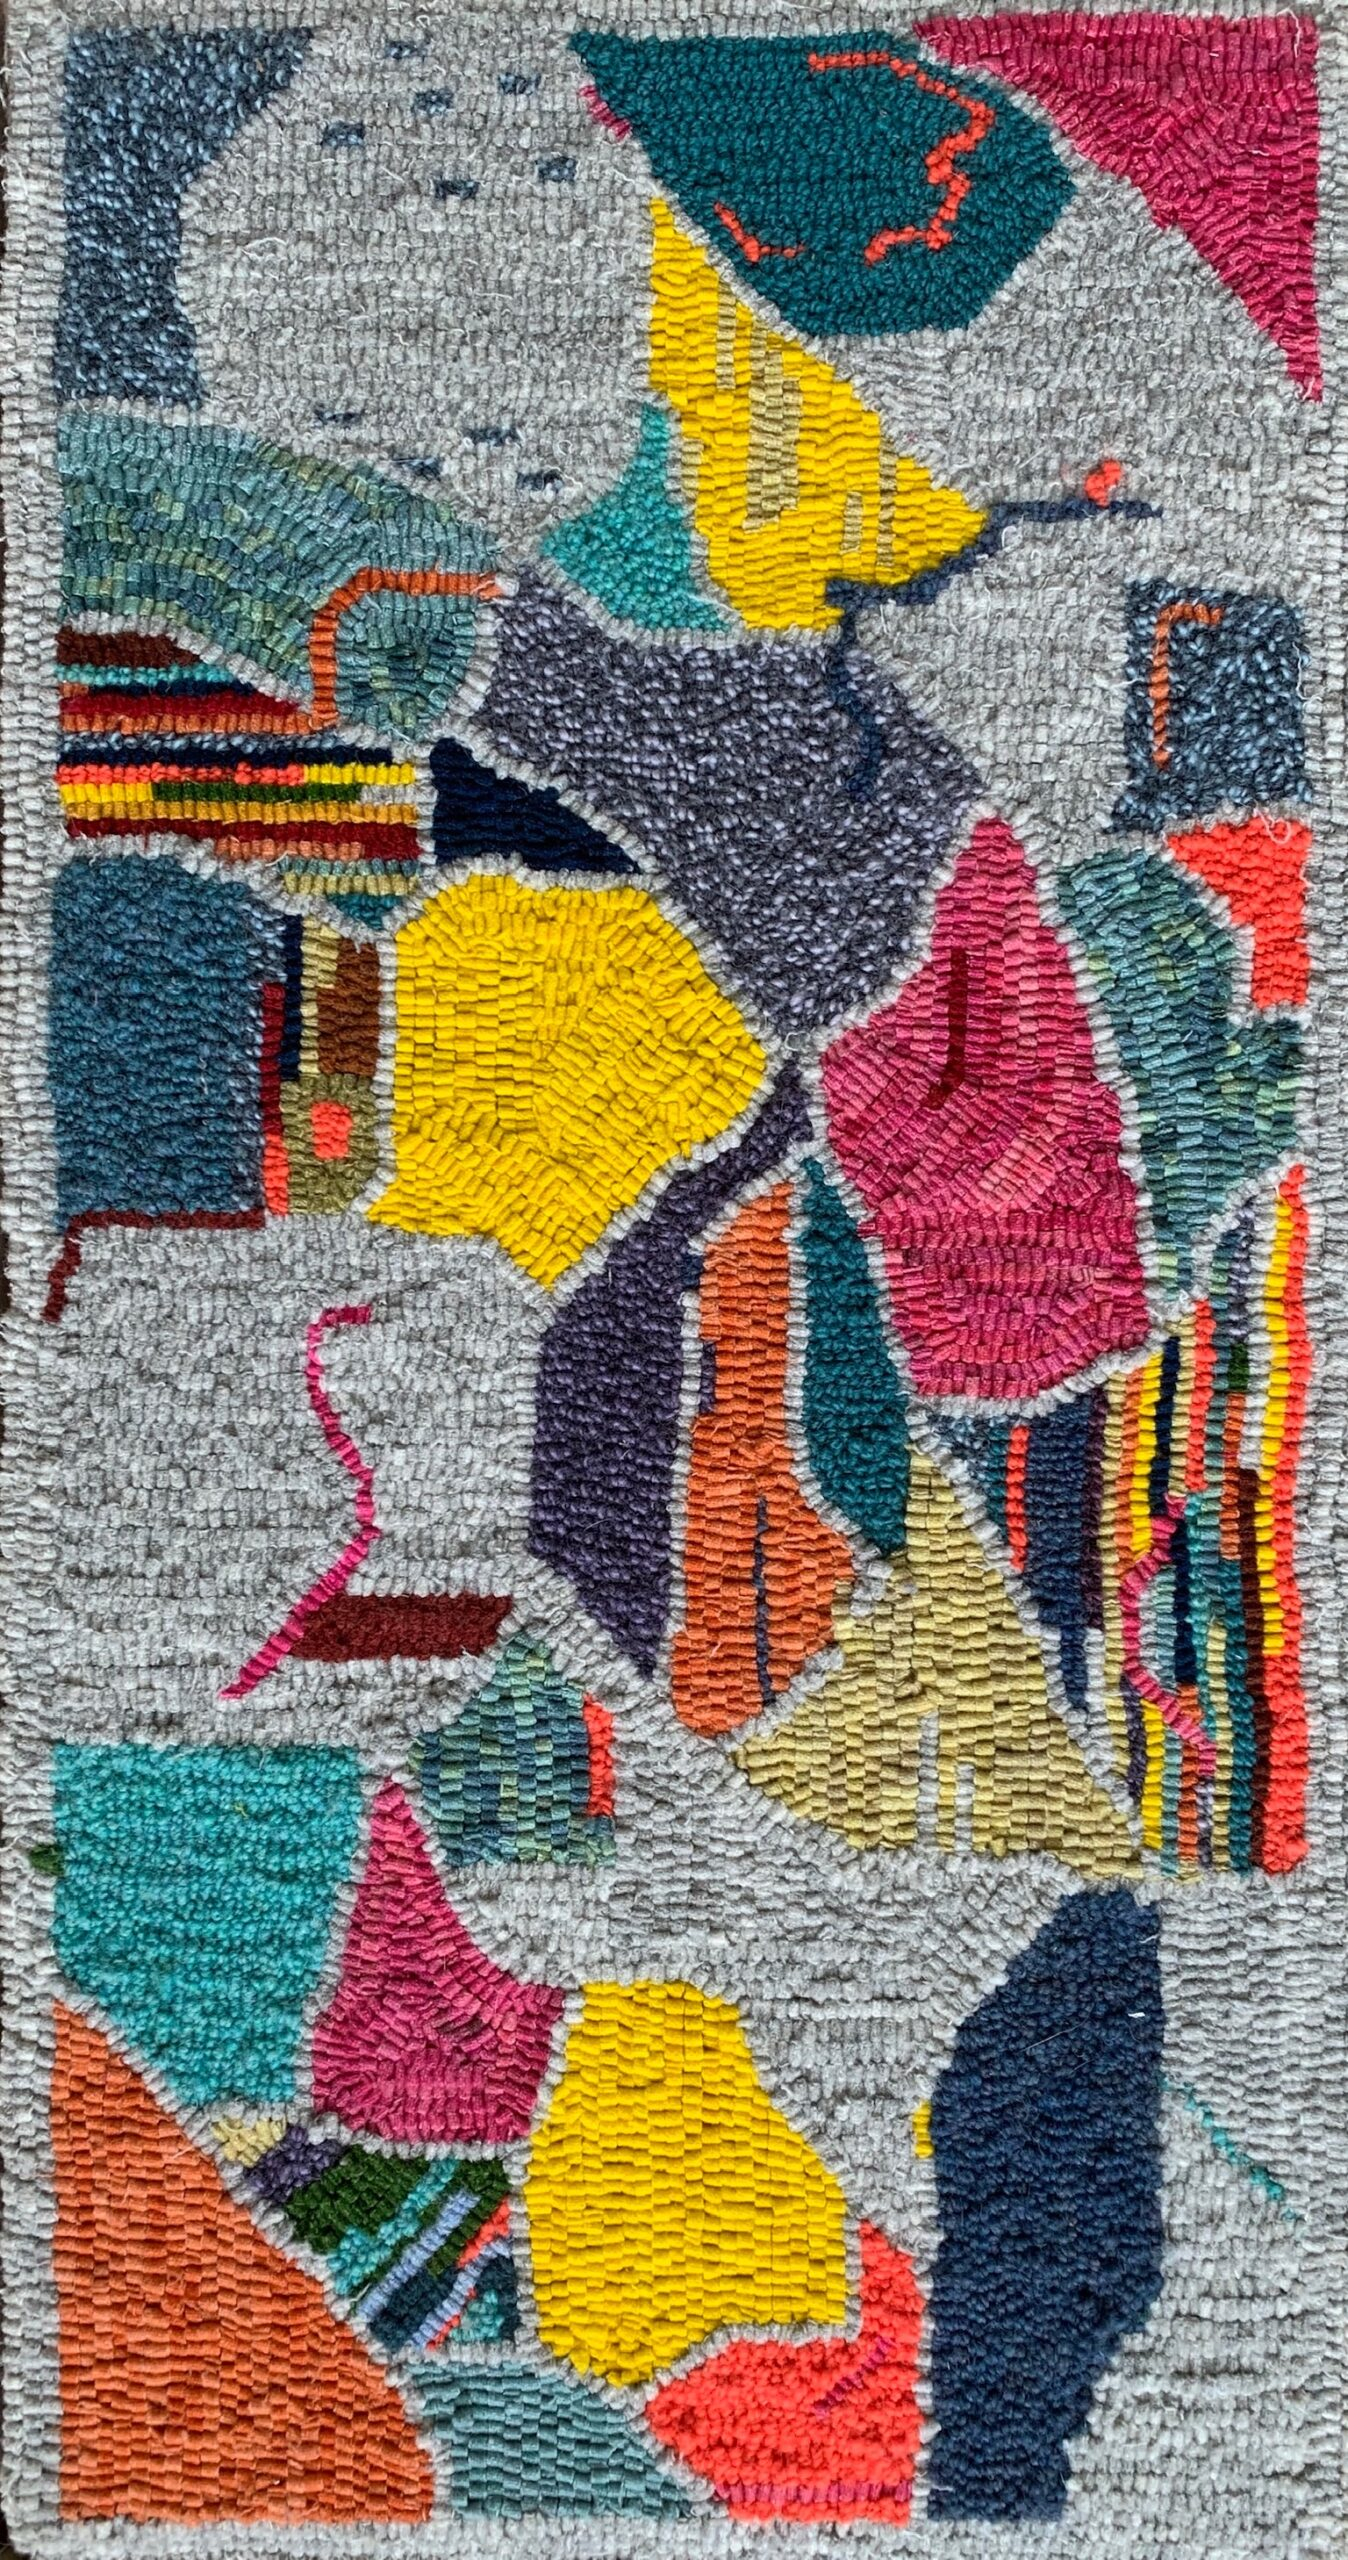 Beginnings, hooked wool on linen, 31